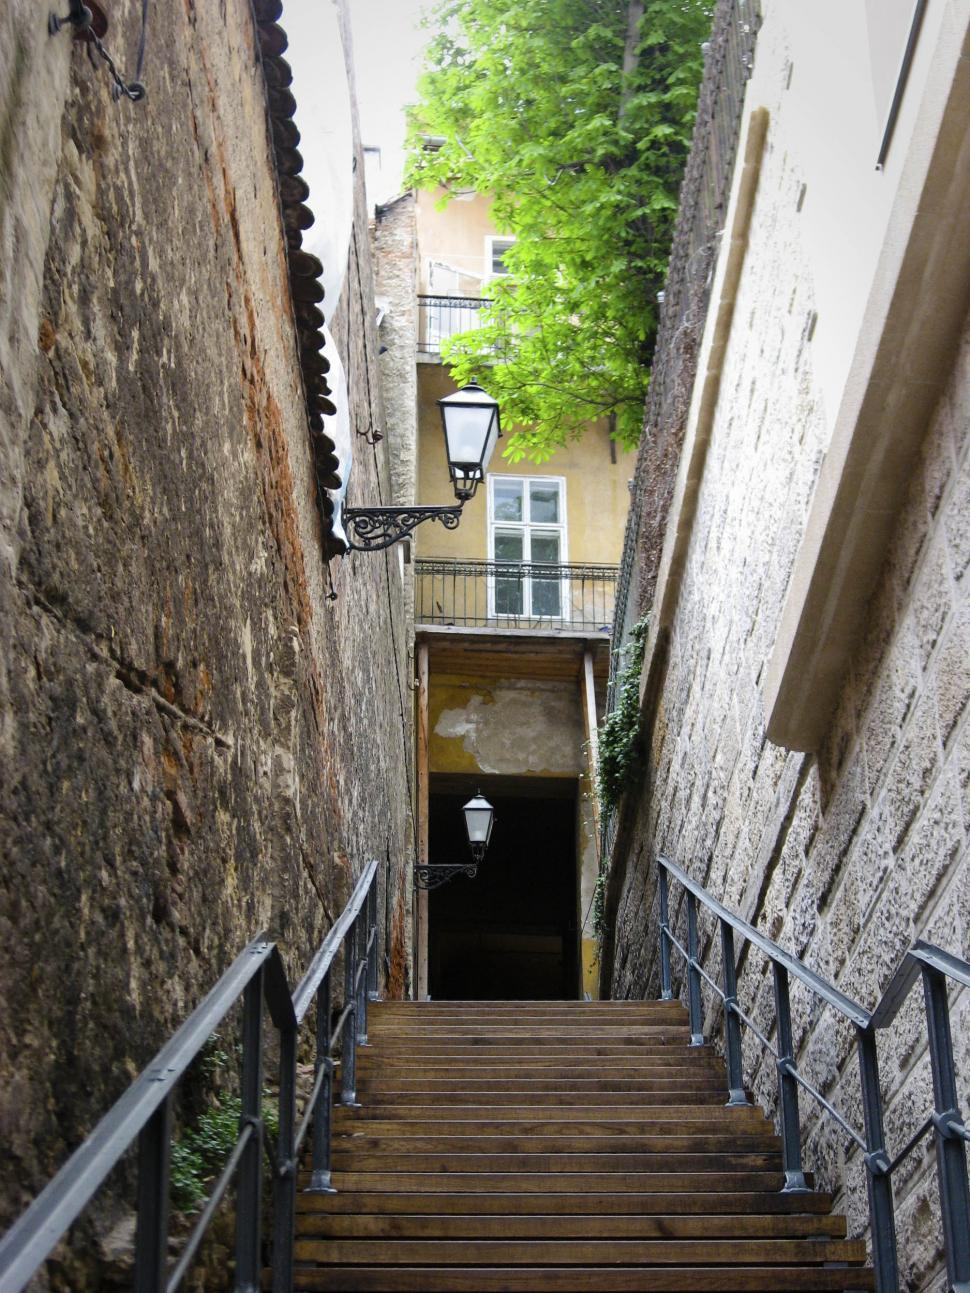 Download Free Stock Photo of old narrow street